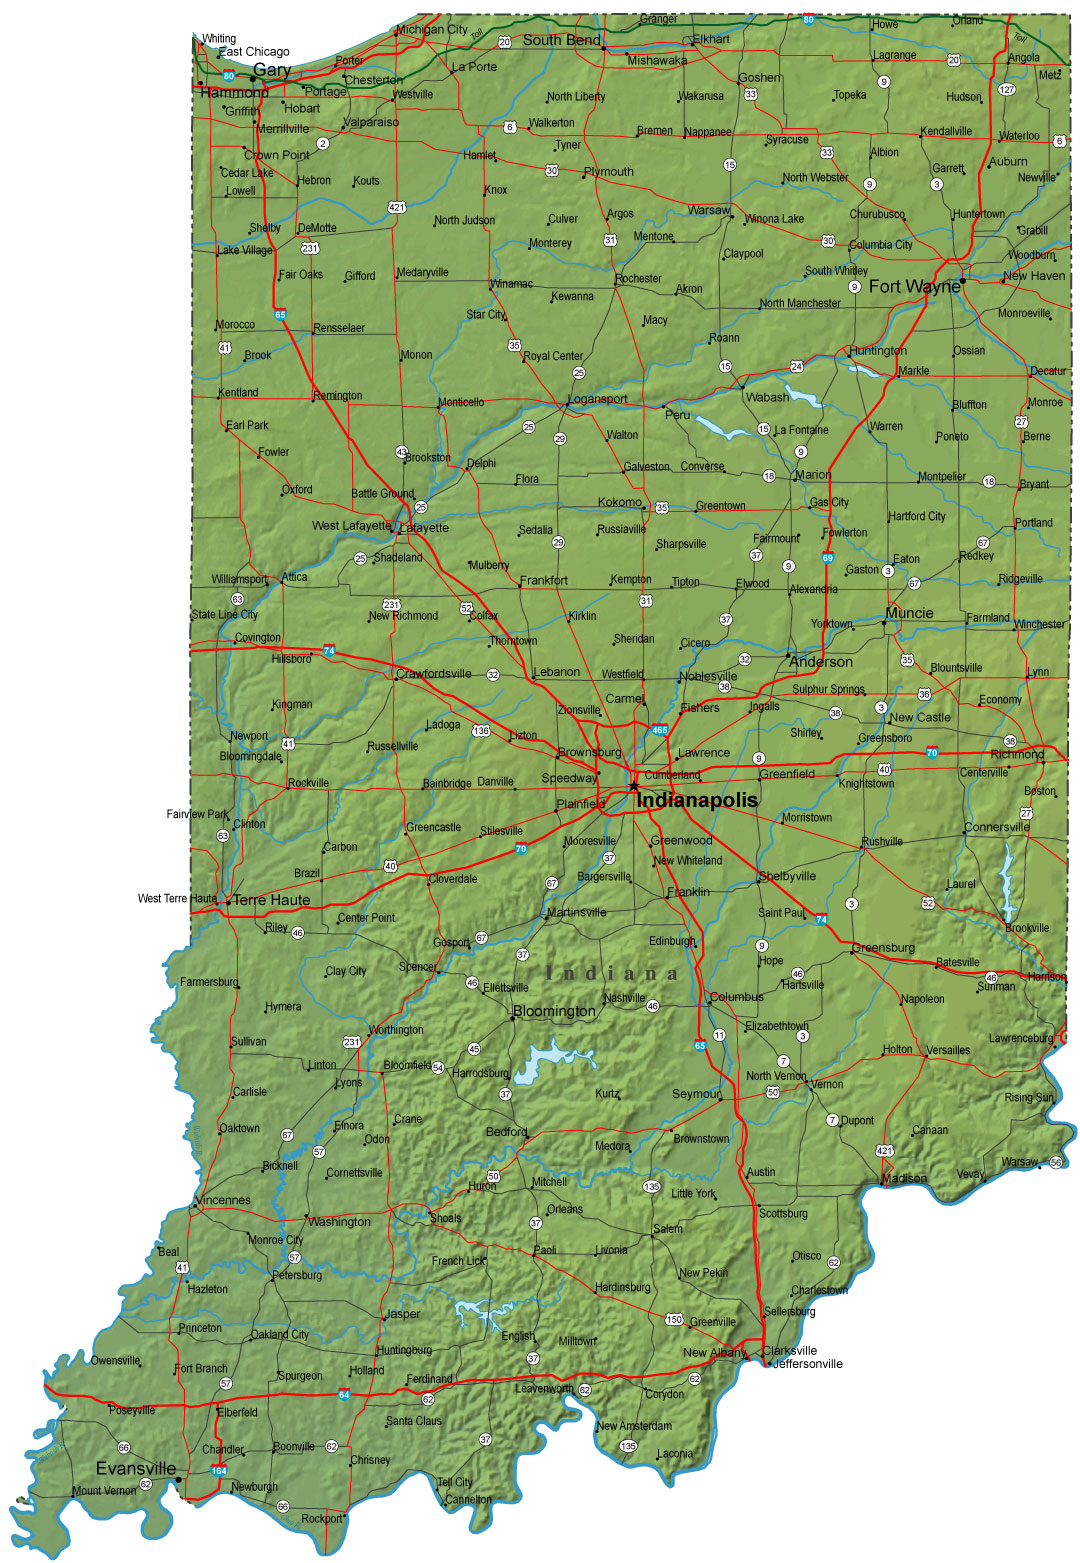 Detailed Indiana Road Map Indiana Mappery - Road map of indiana